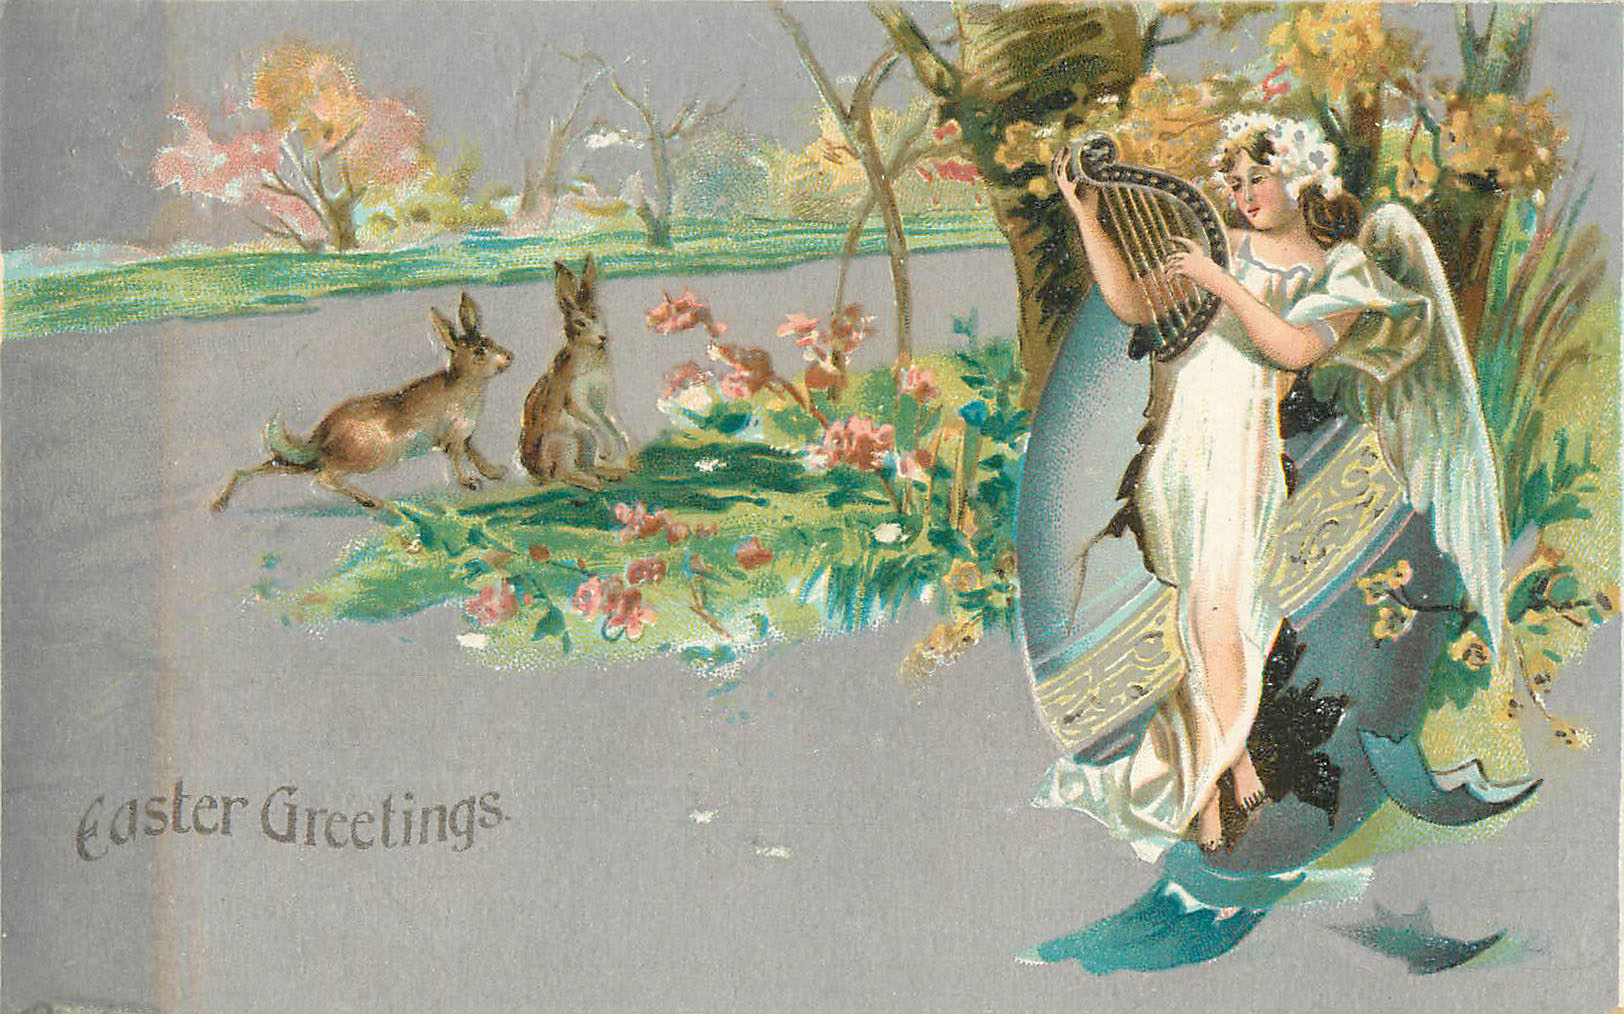 Easter Greetings - Angel playing a harp